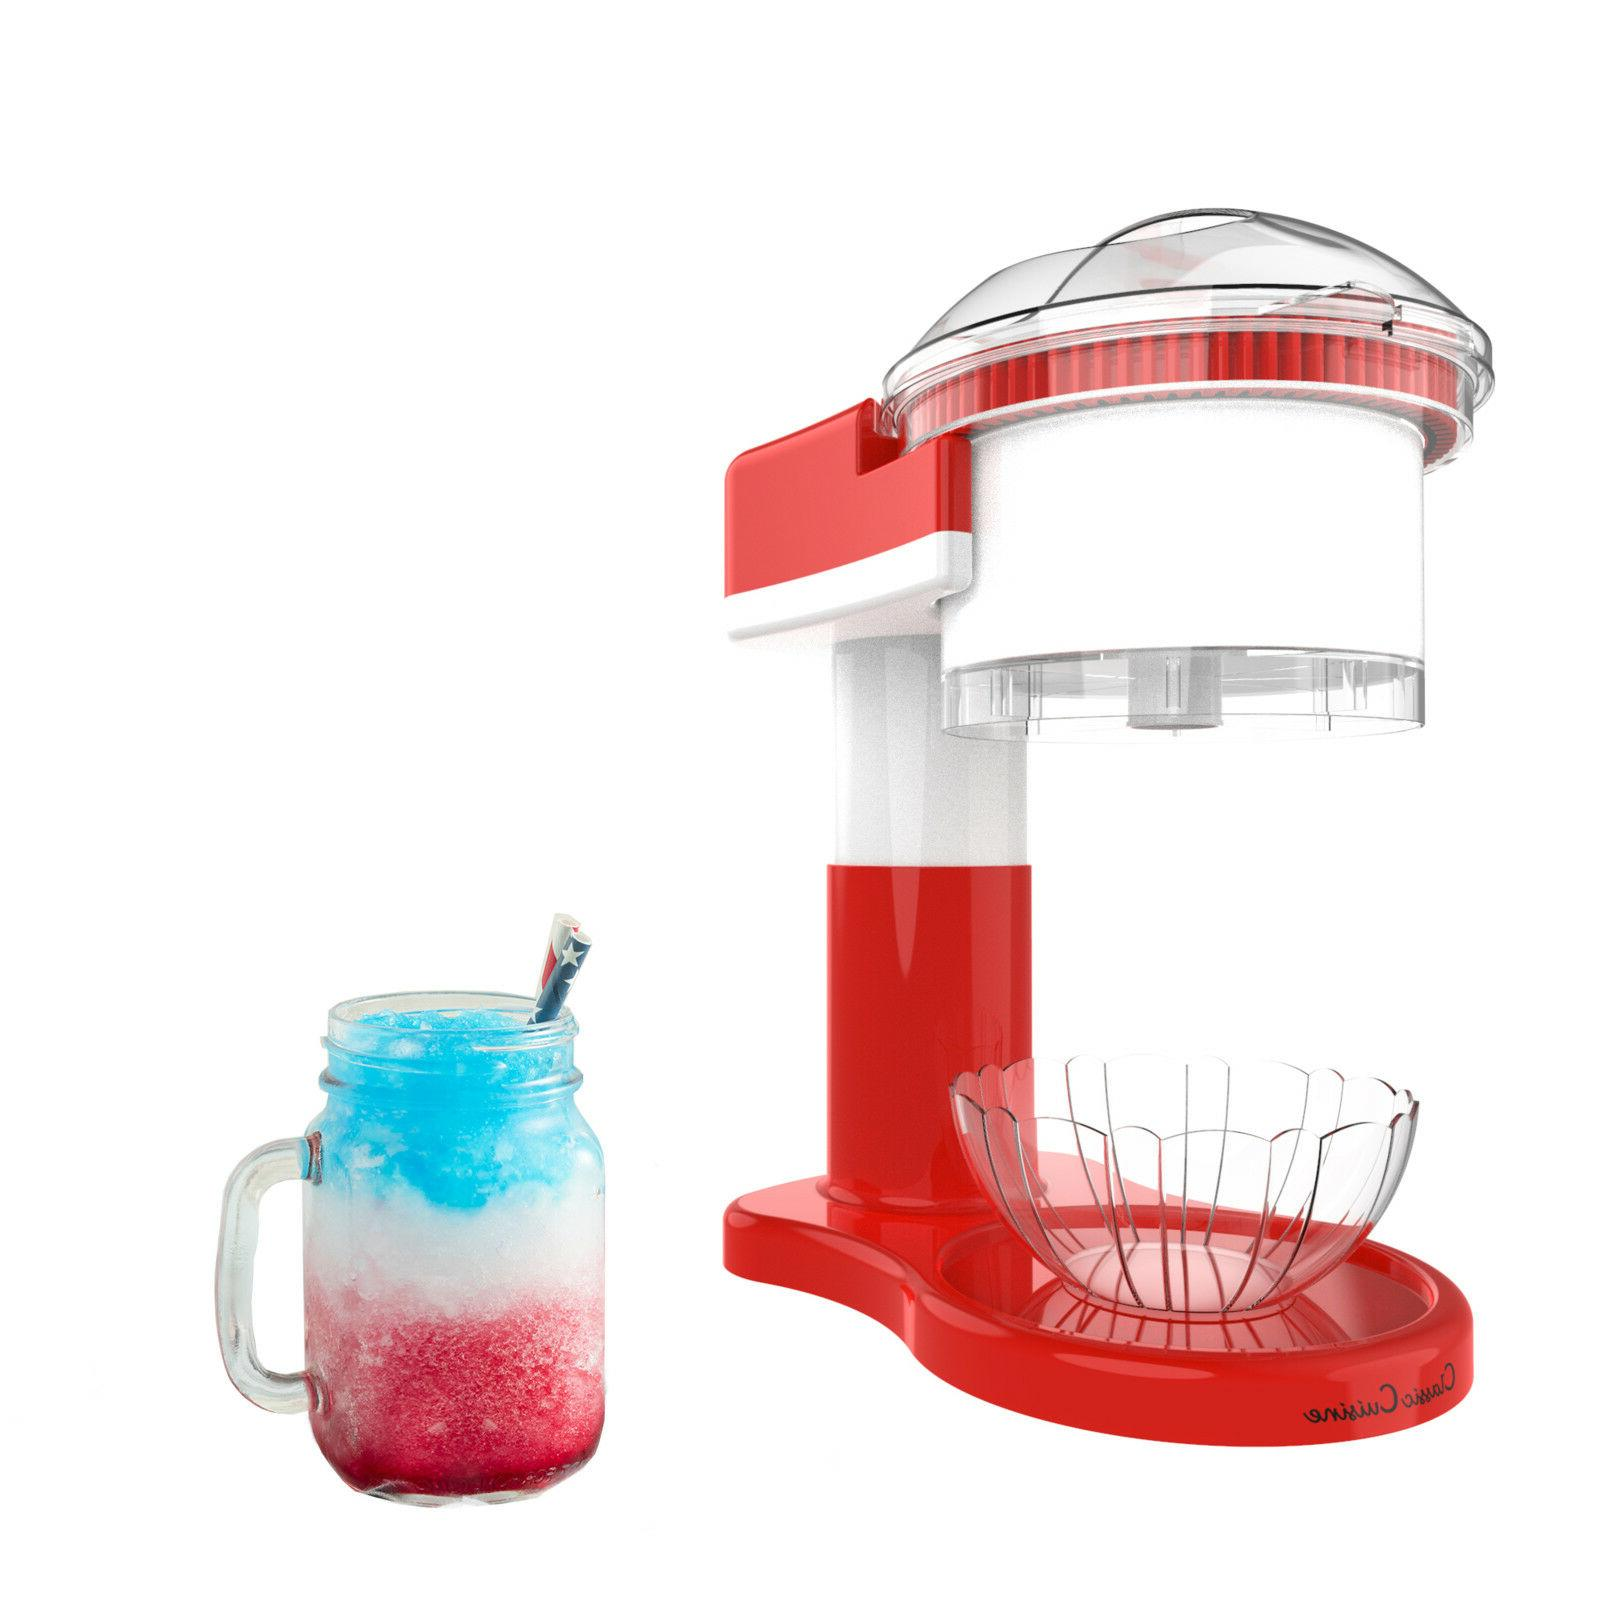 shaved ice maker snow cone